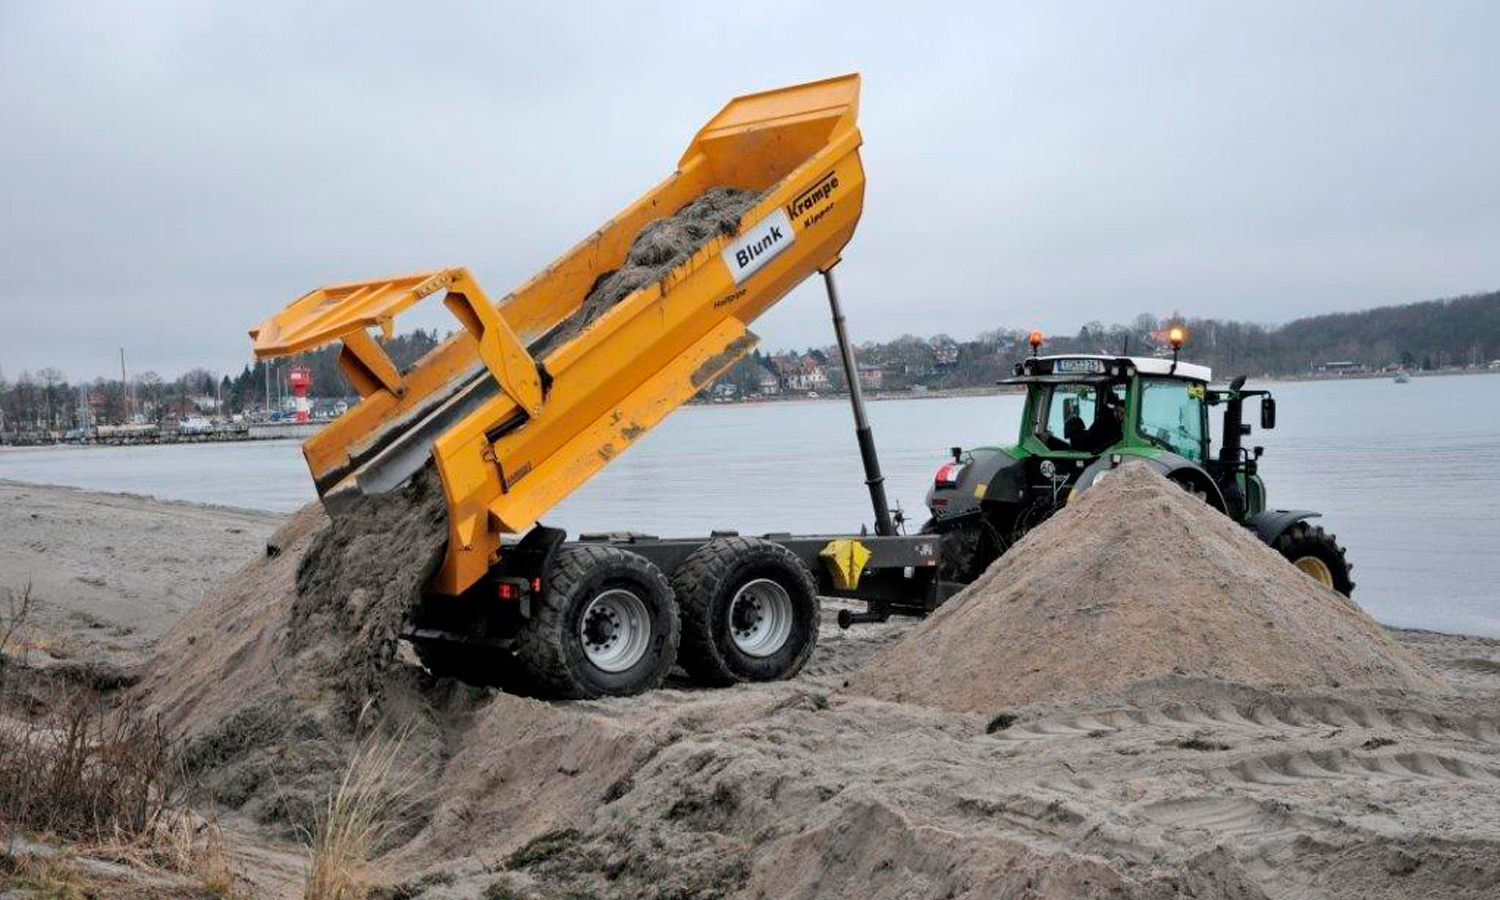 Dune construction using beach wrack at Eckernförde.